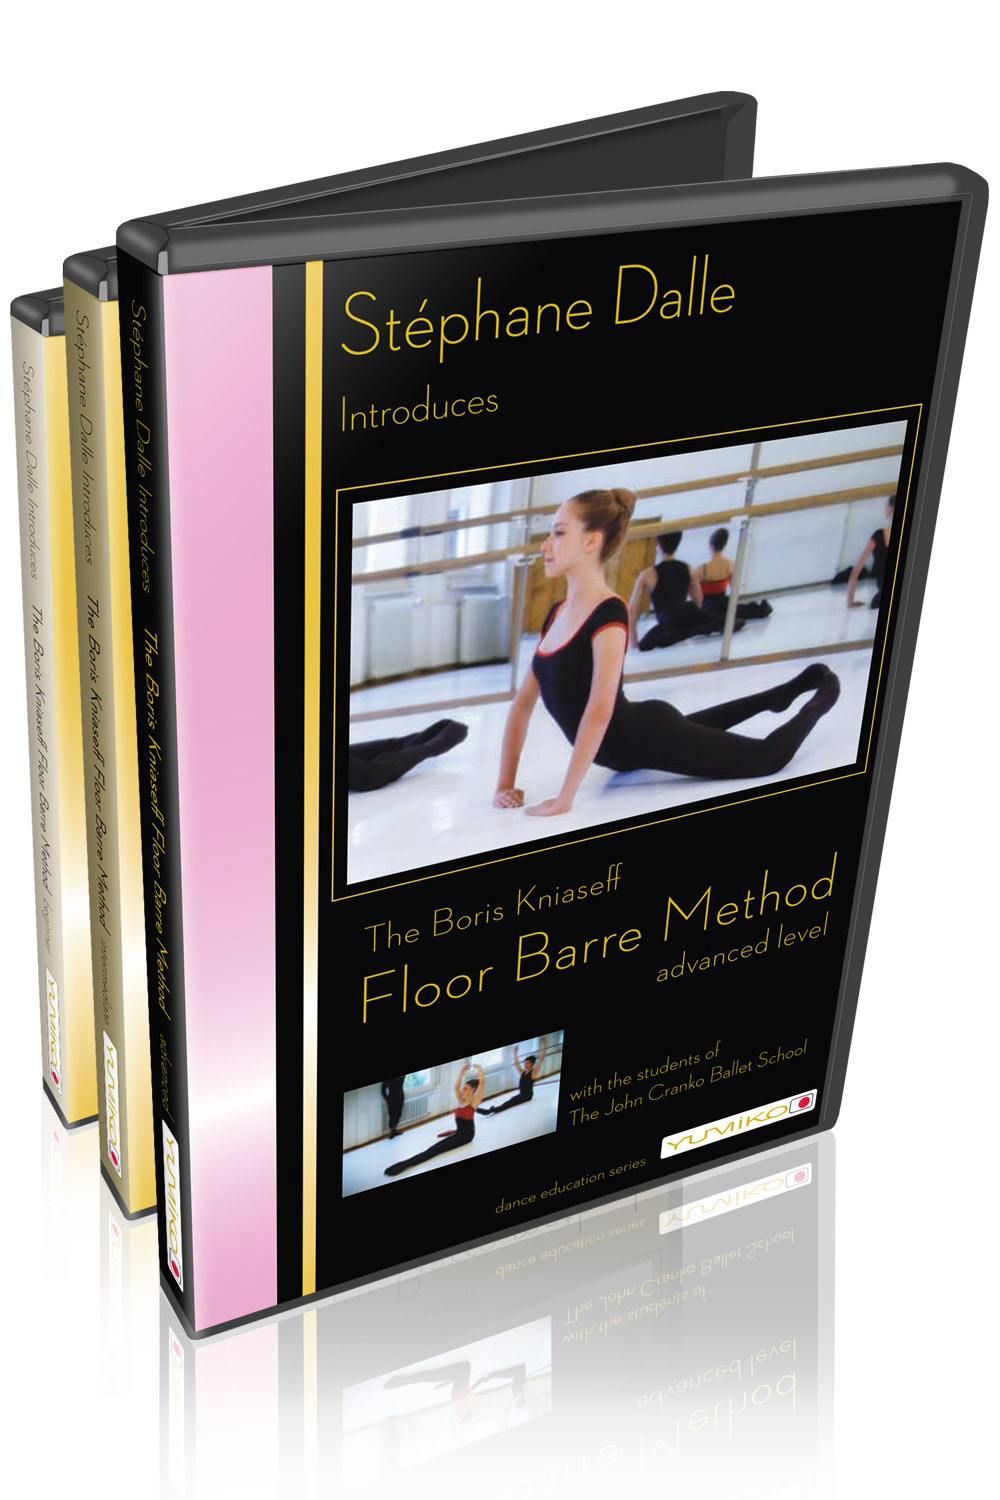 Stephane Dalle Floor Barre DVD set